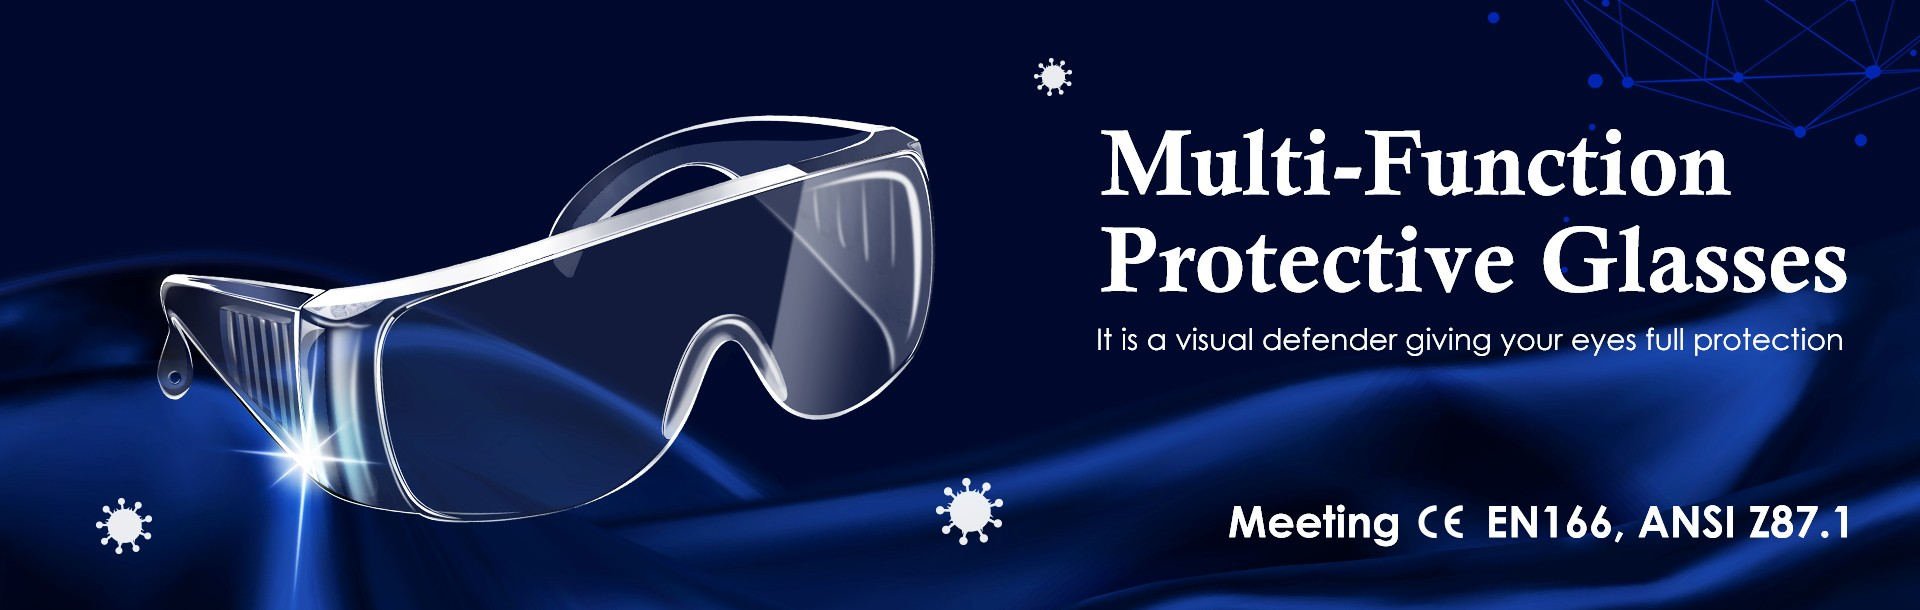 Multi-Function Protective Glasses